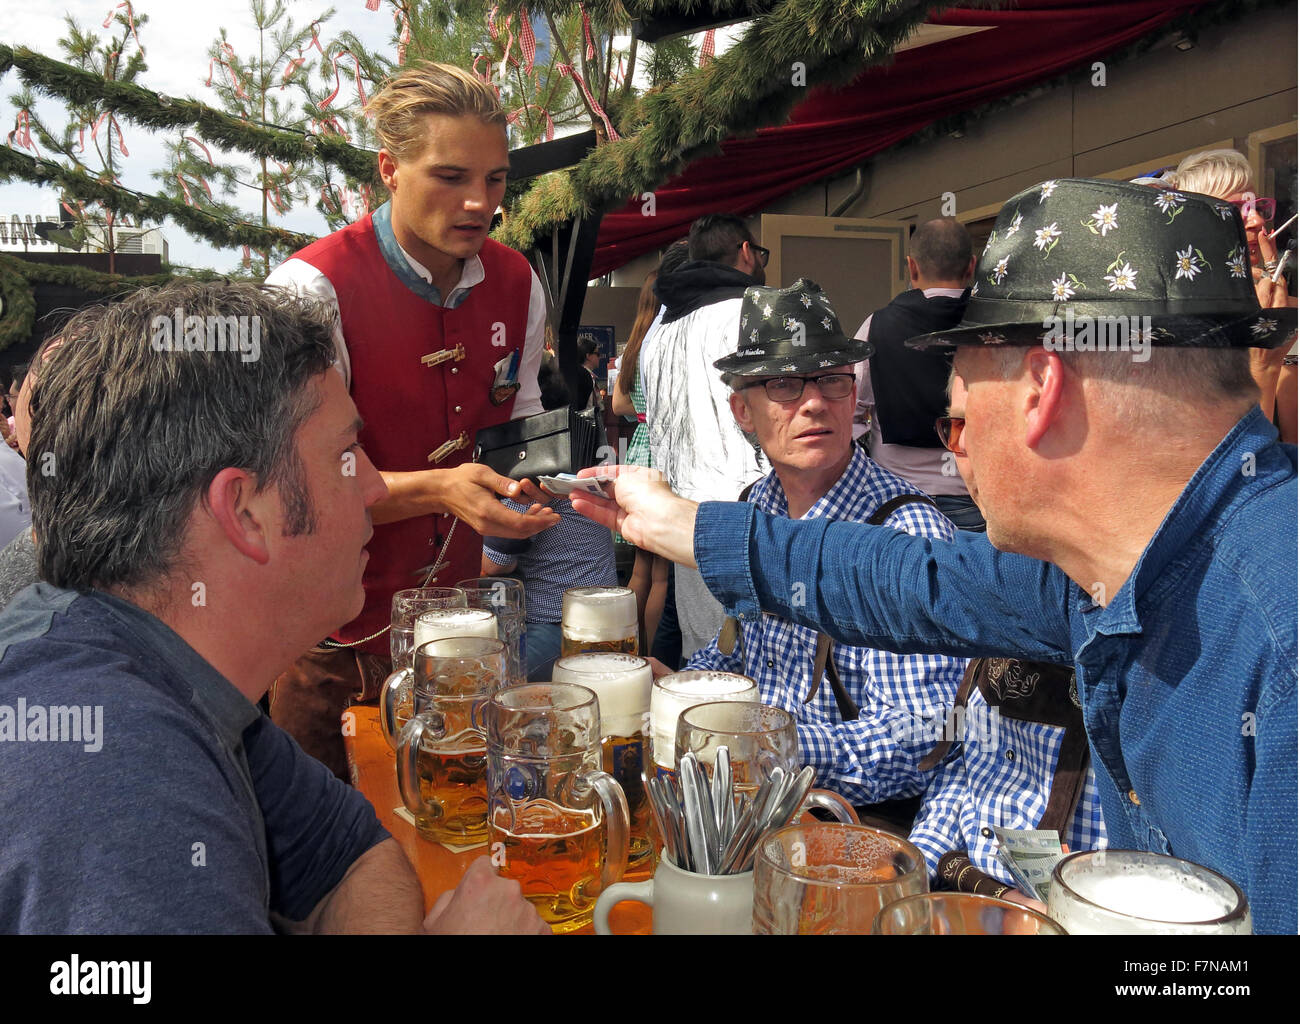 Paying for beer at Oktoberfest,Munich,Bavaria,Germany Stock Photo